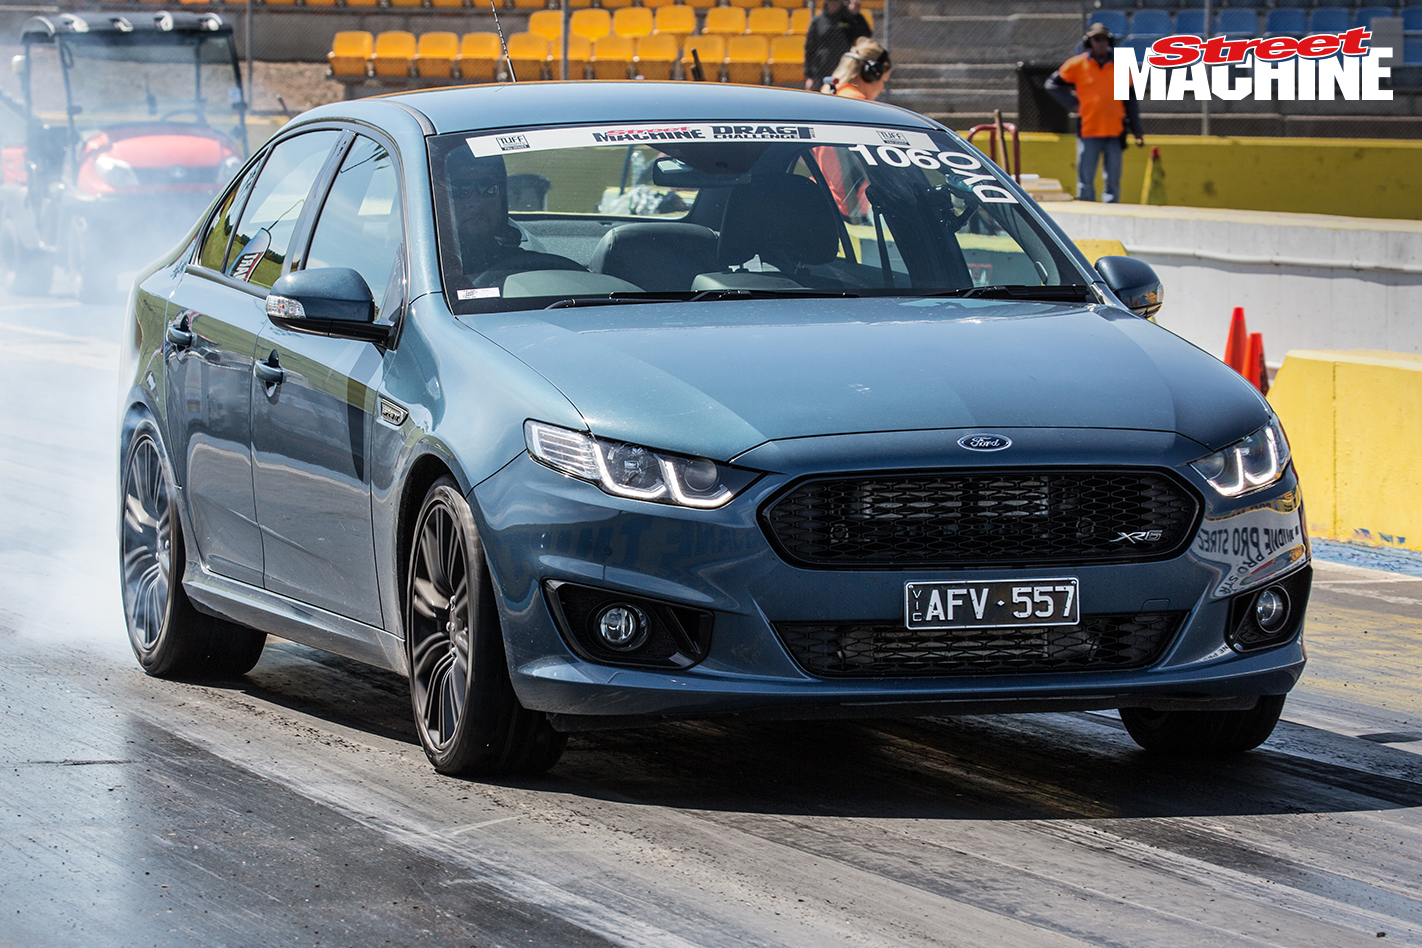 Ford Falcon XR6 Sprint Drag Challenge 3